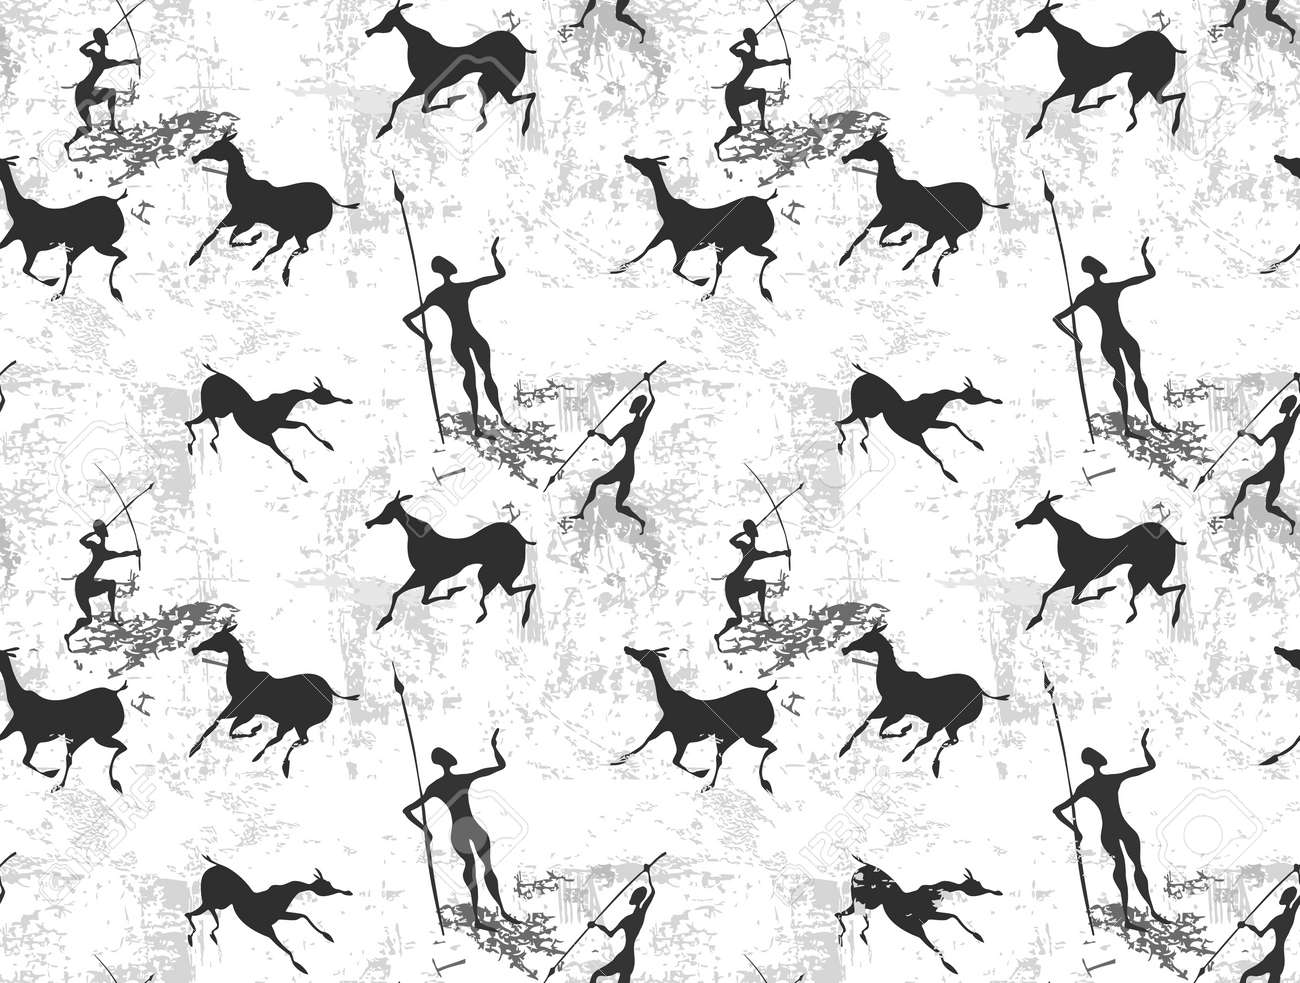 Cave painting seamless background texture - 18120304